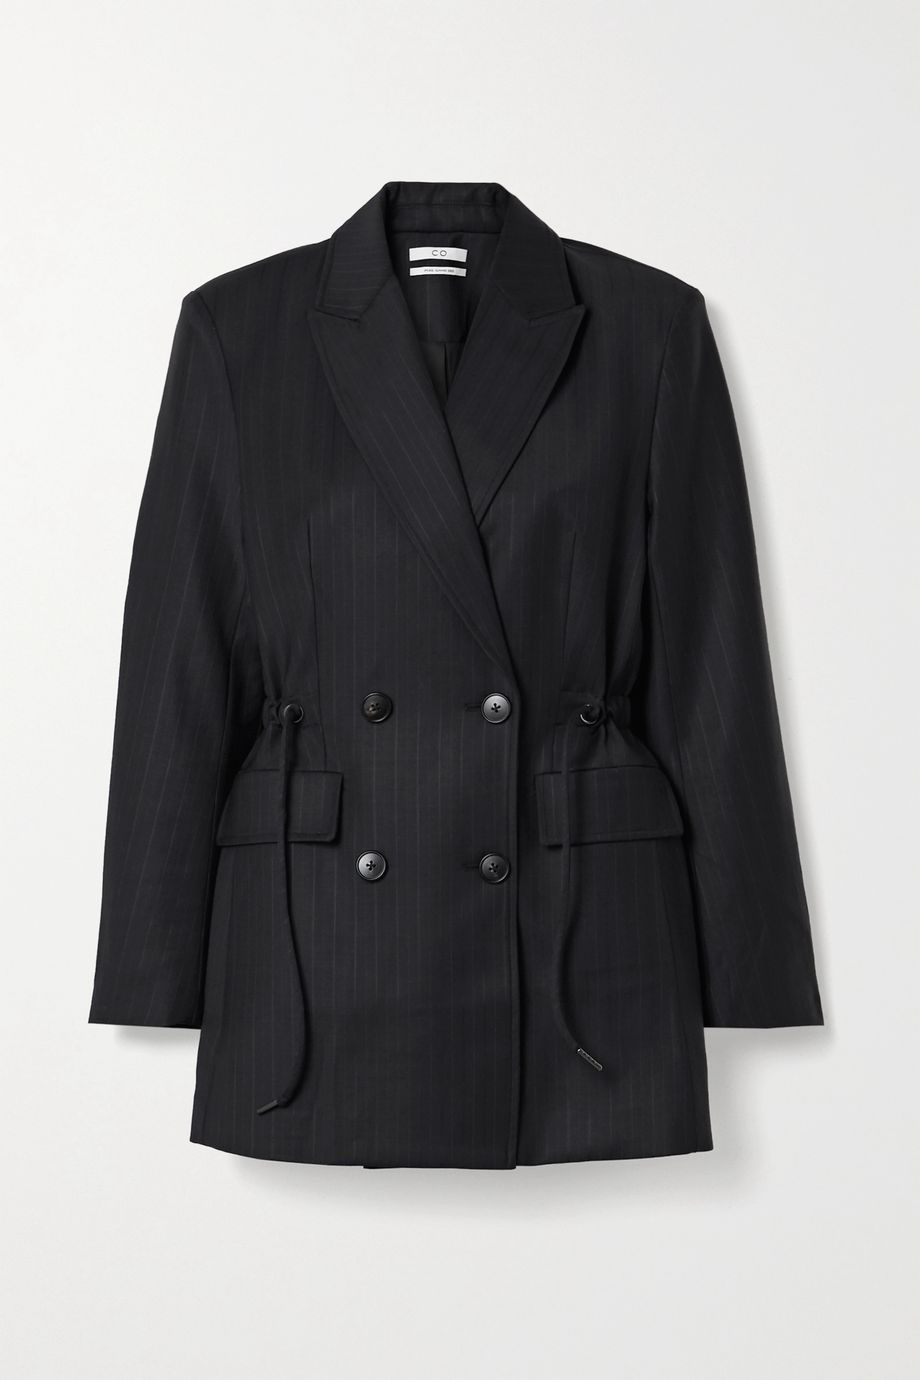 Co Double-breasted pinstriped wool-blend blazer